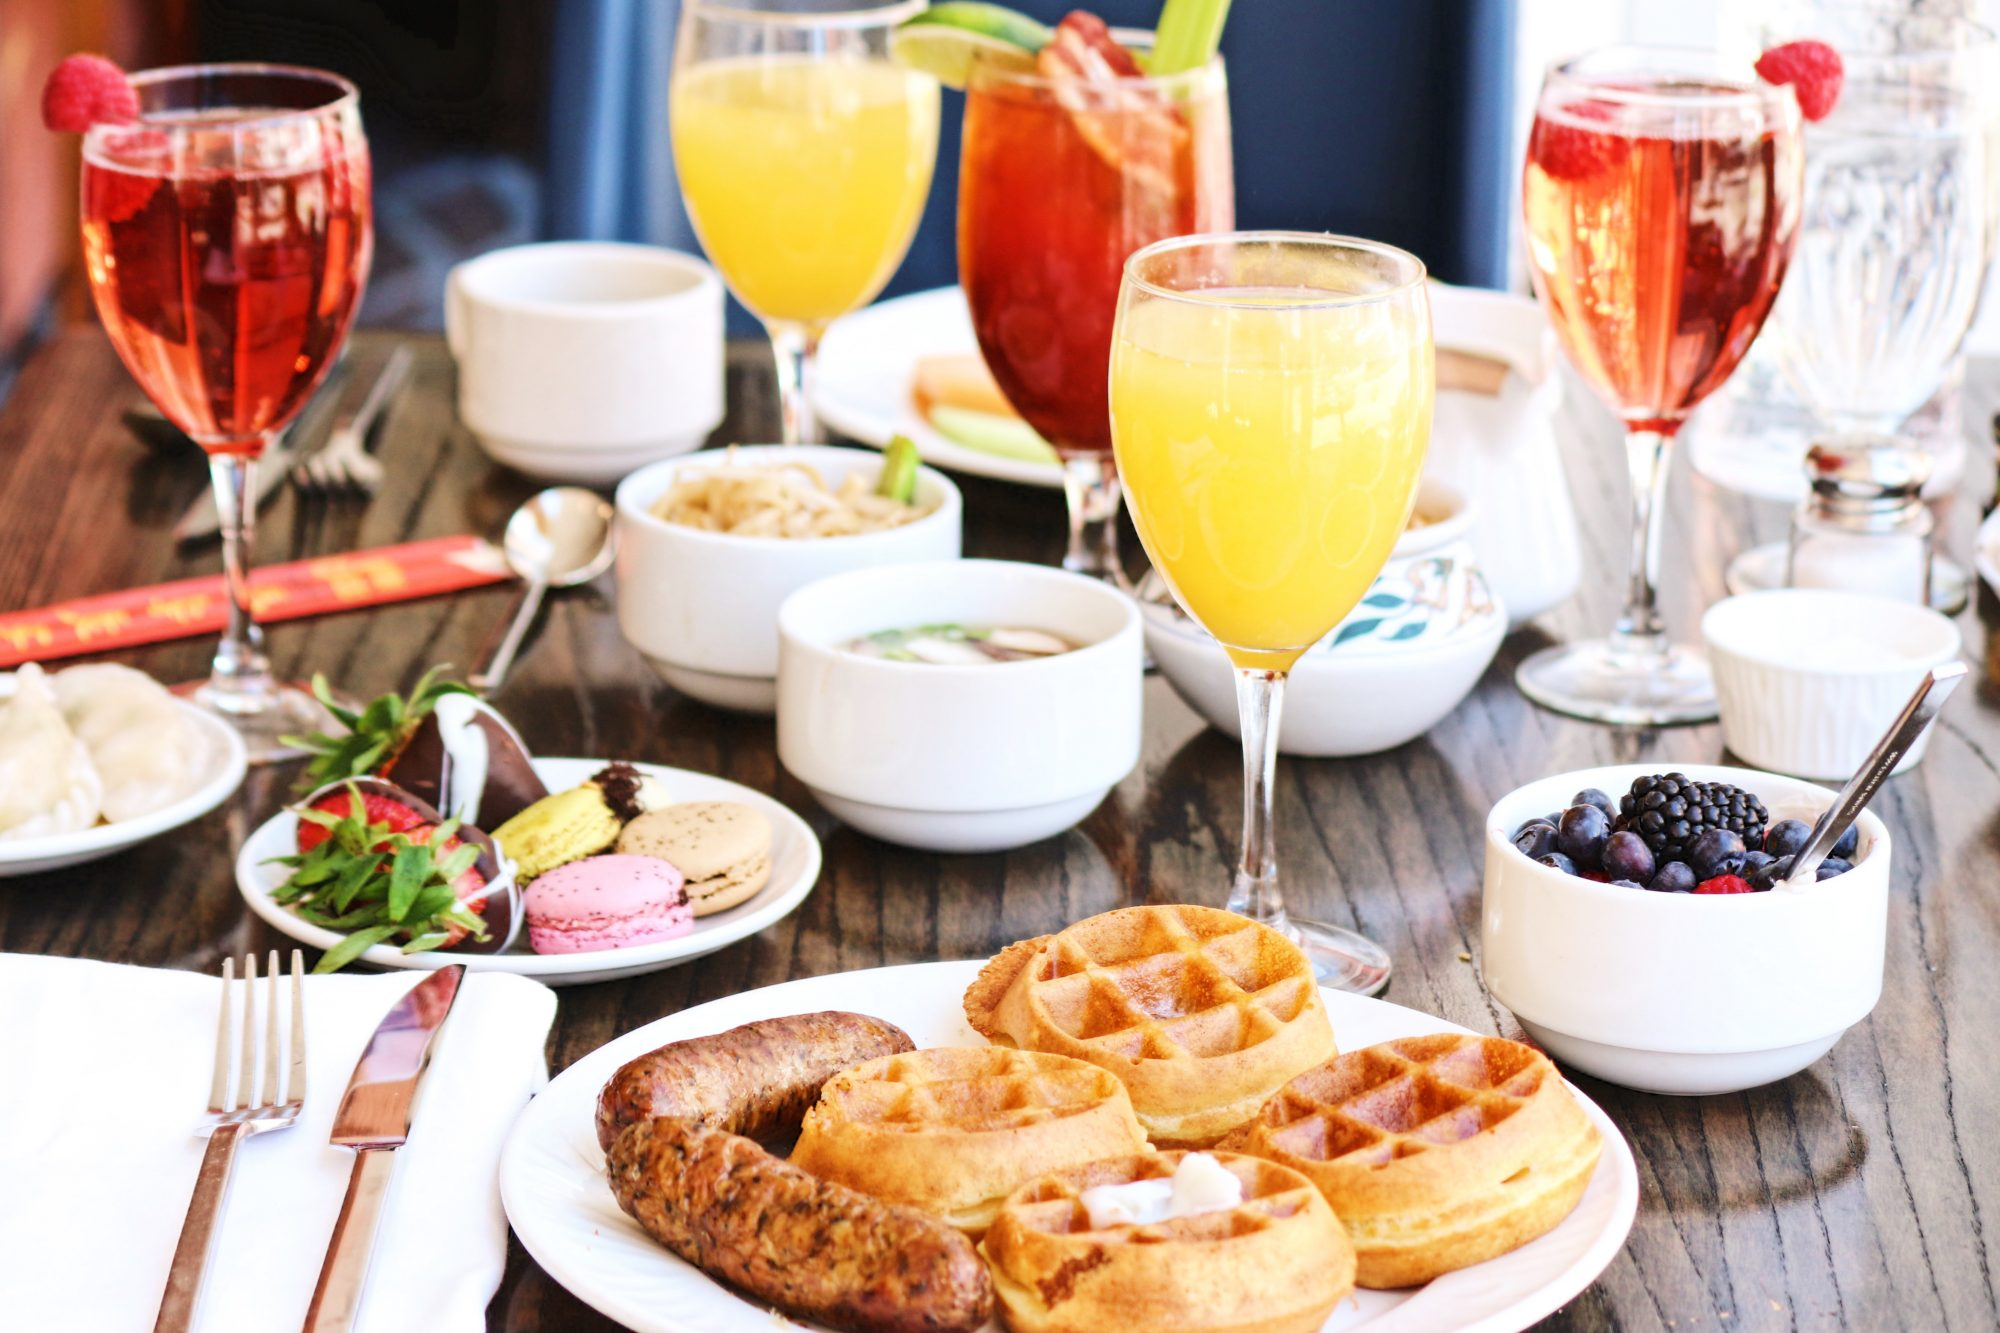 It Happened to Me: I Was Denied Coffee at a Brunch Restaurant